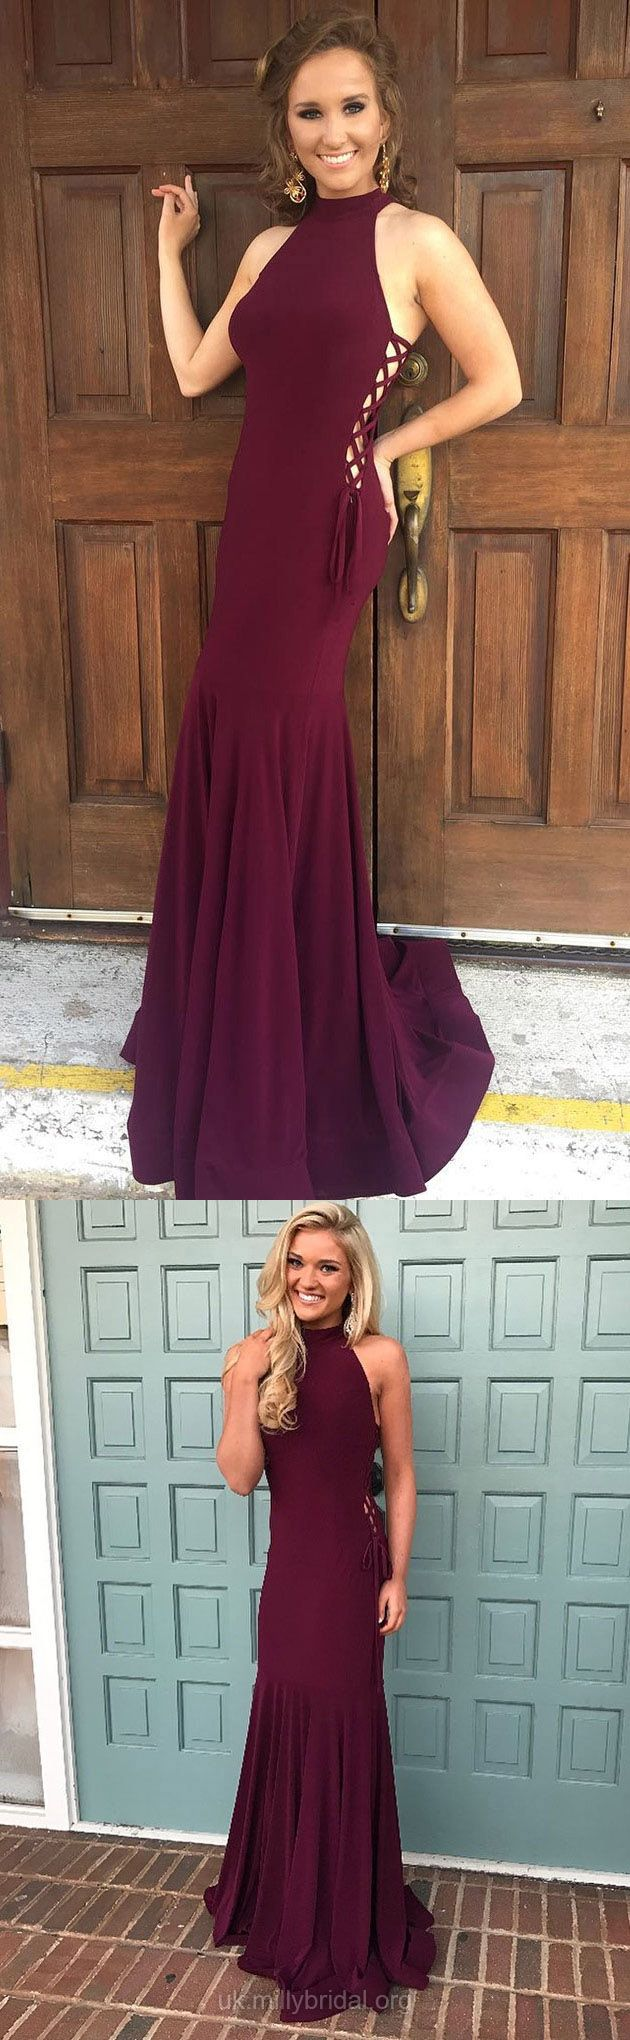 Long prom dresses burgundy mermaid prom dresses tight evening